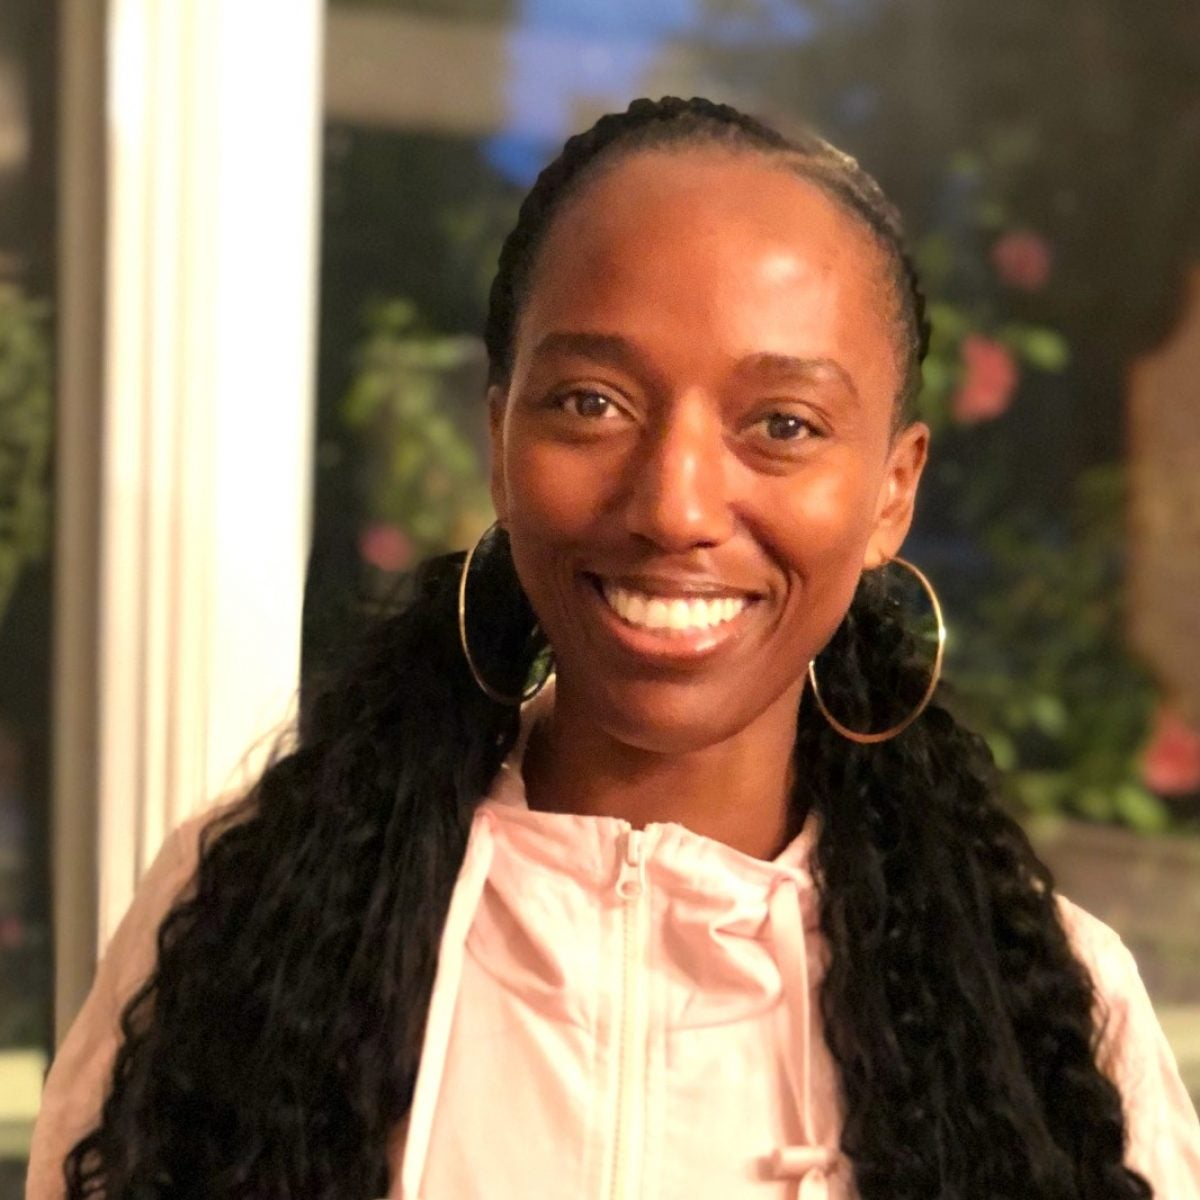 Making Moves With Sickle Cell & Living Beyond A Diagnosis